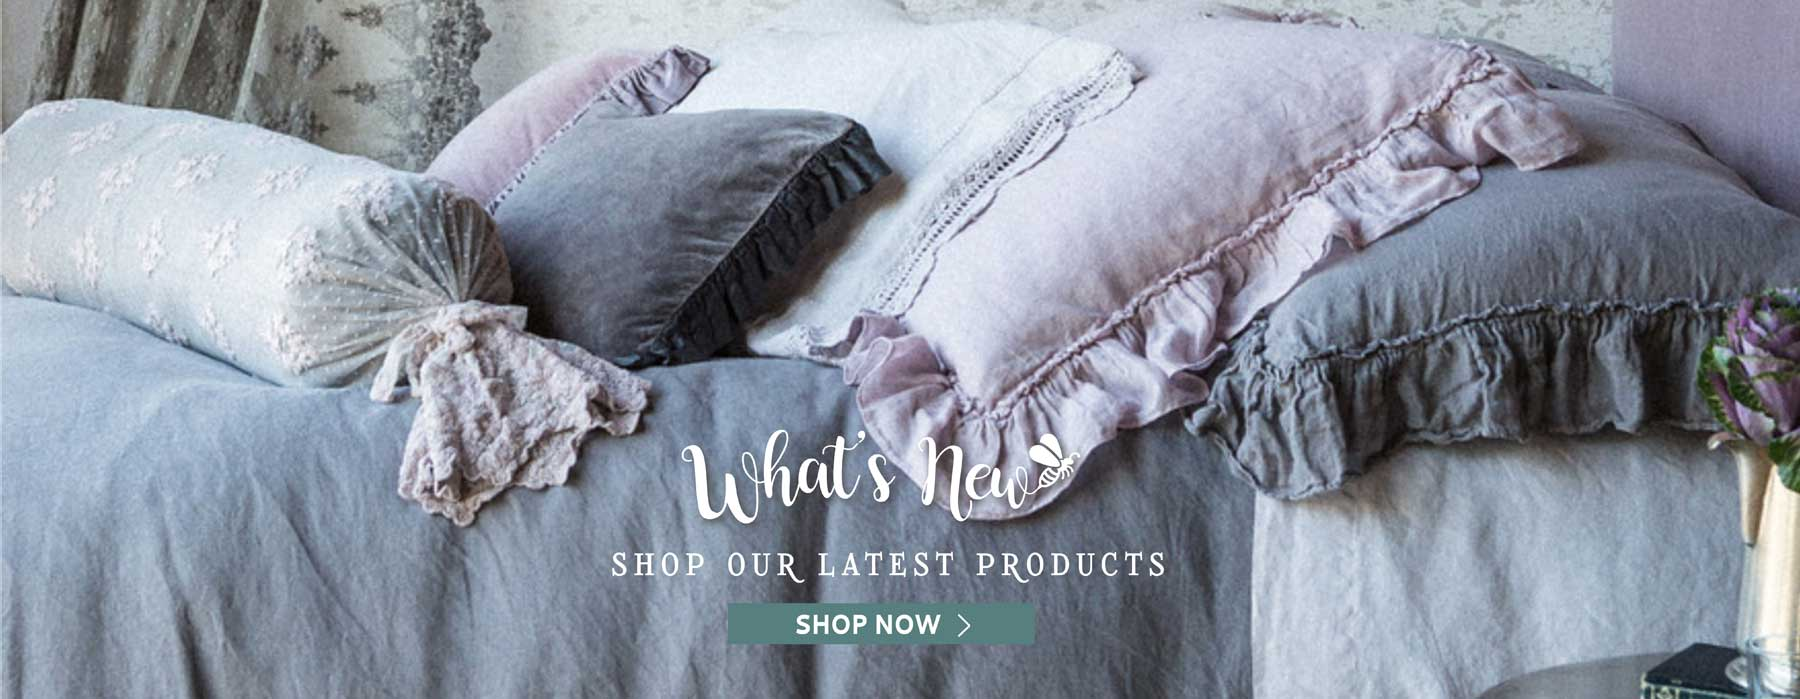 What's New - Shop Our Latest Products